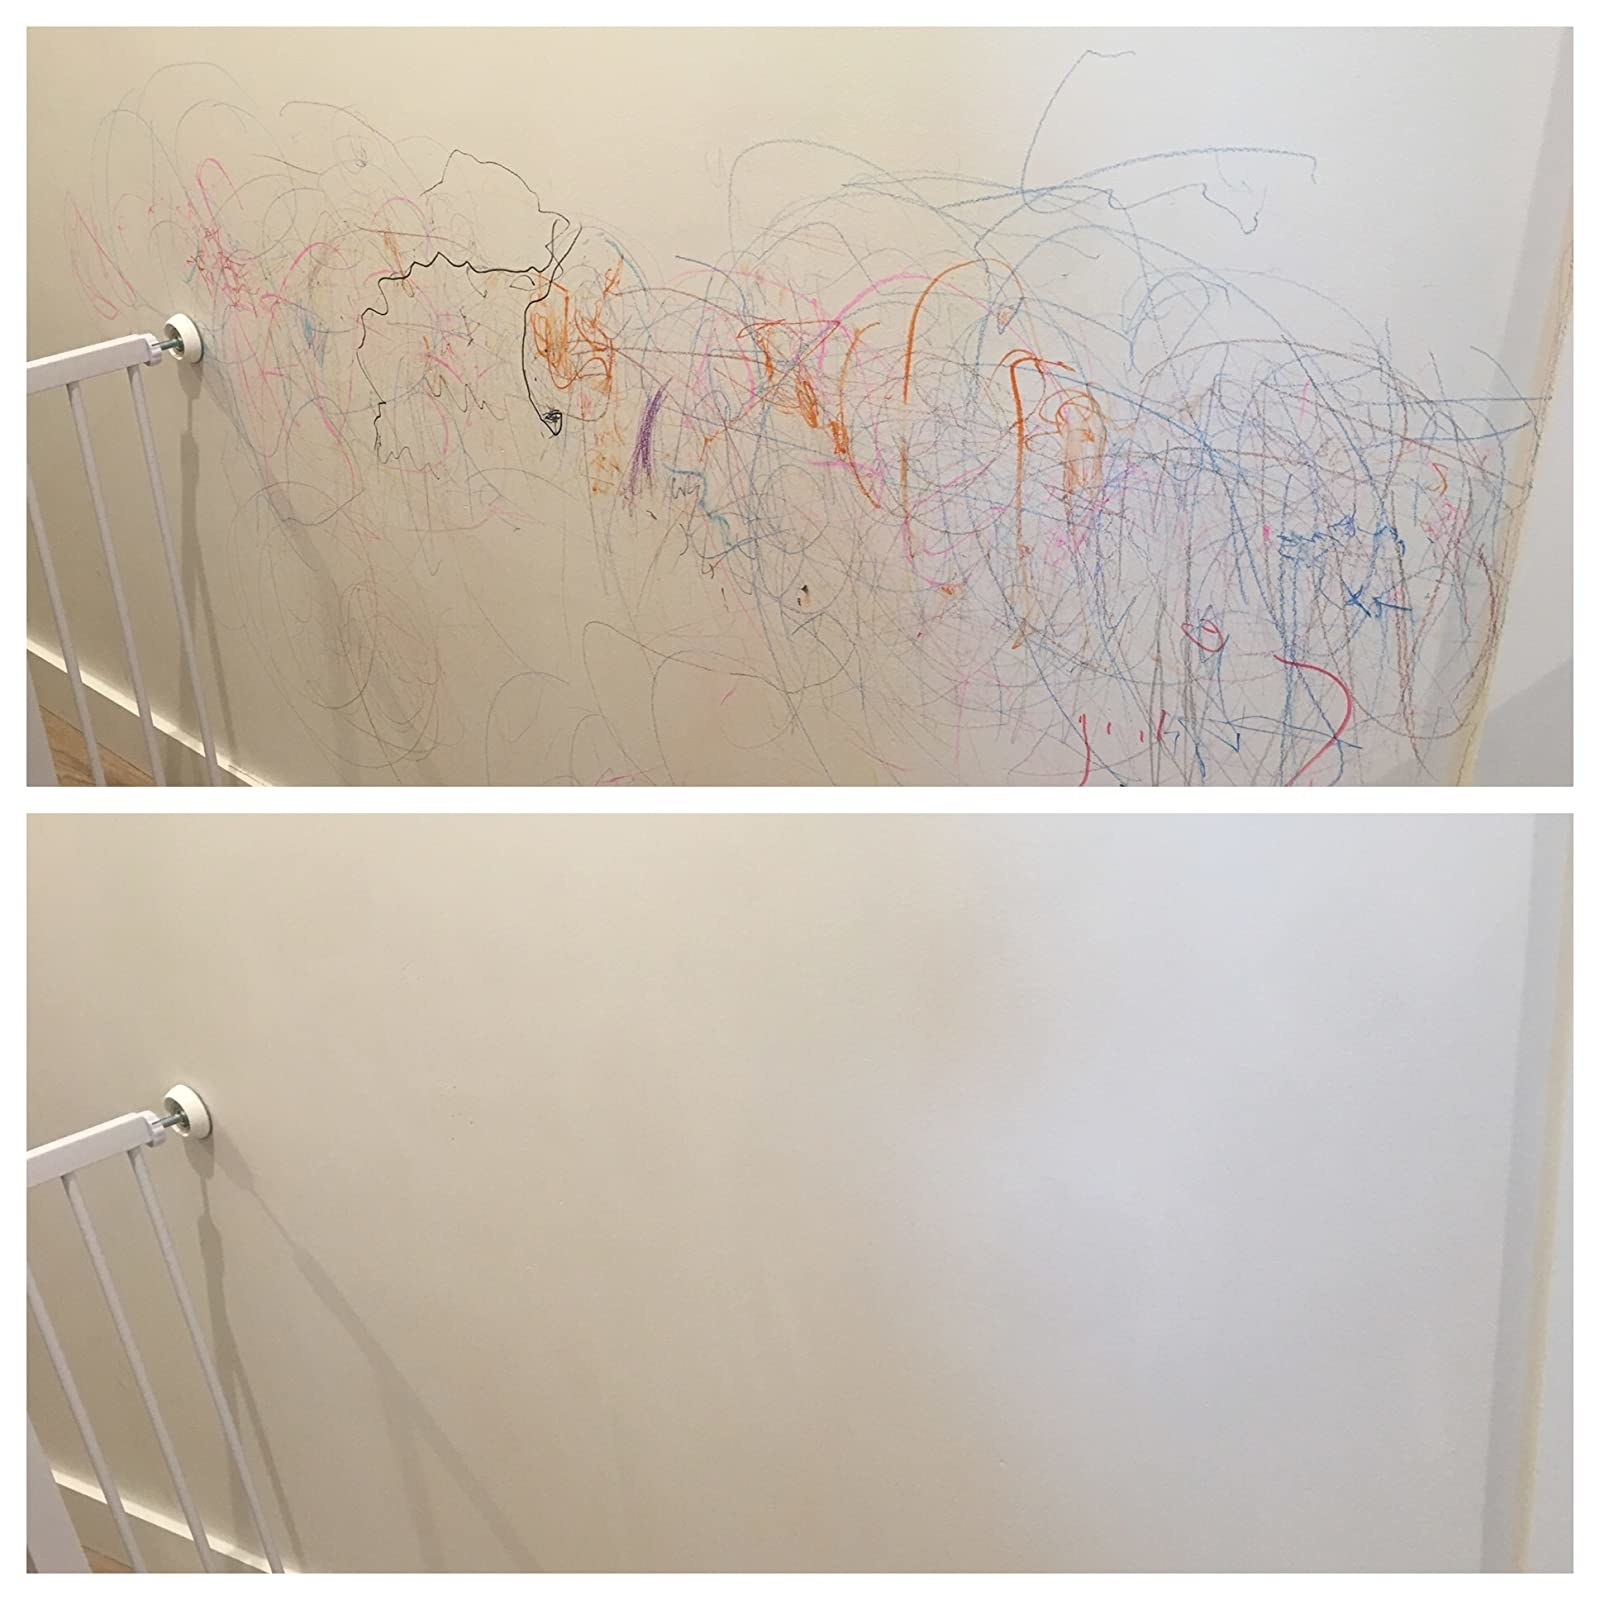 before and after reviewer images of a wall once covered in crayon and markers now completely mark-free